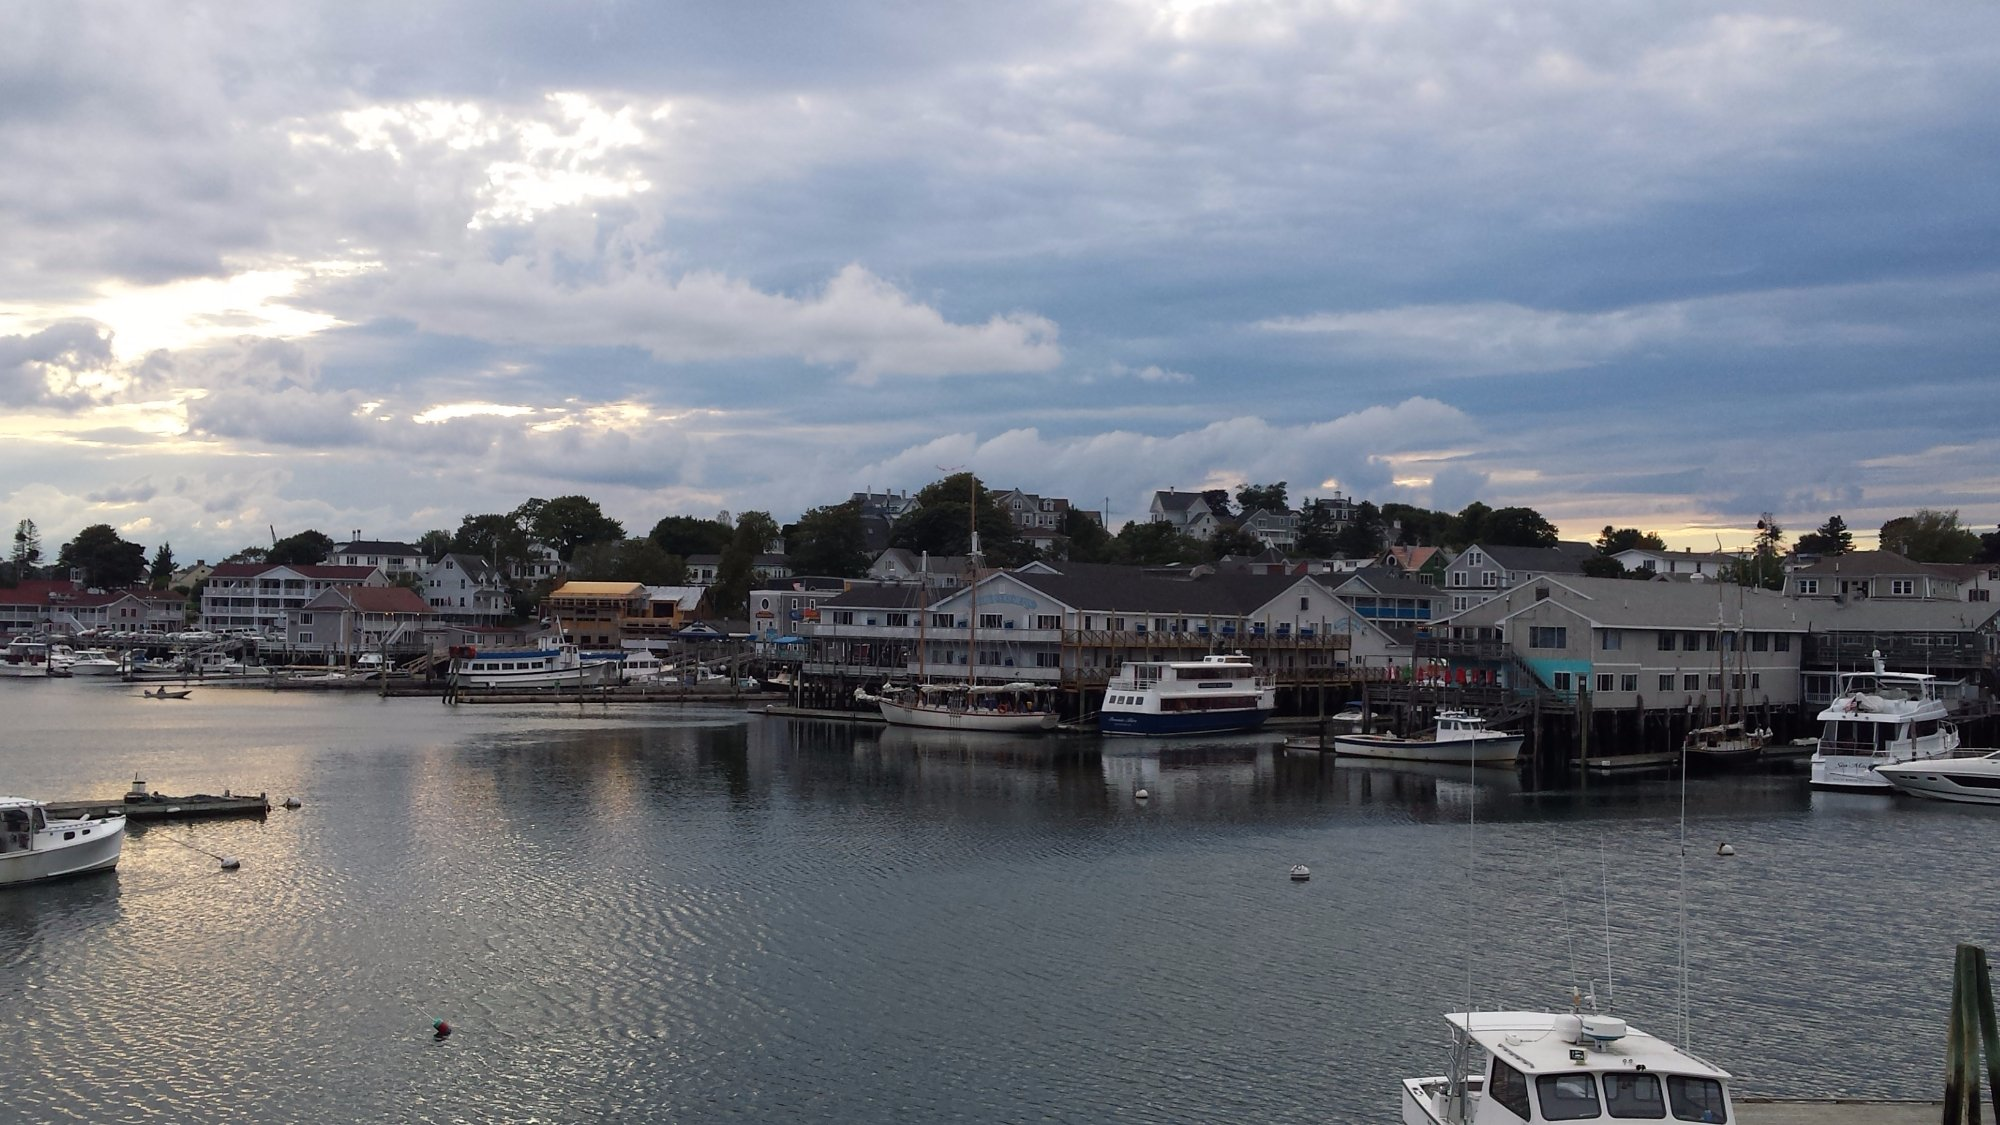 Sitting in small motel looking over the bay at the small town of Boothbay Harbor, Maine